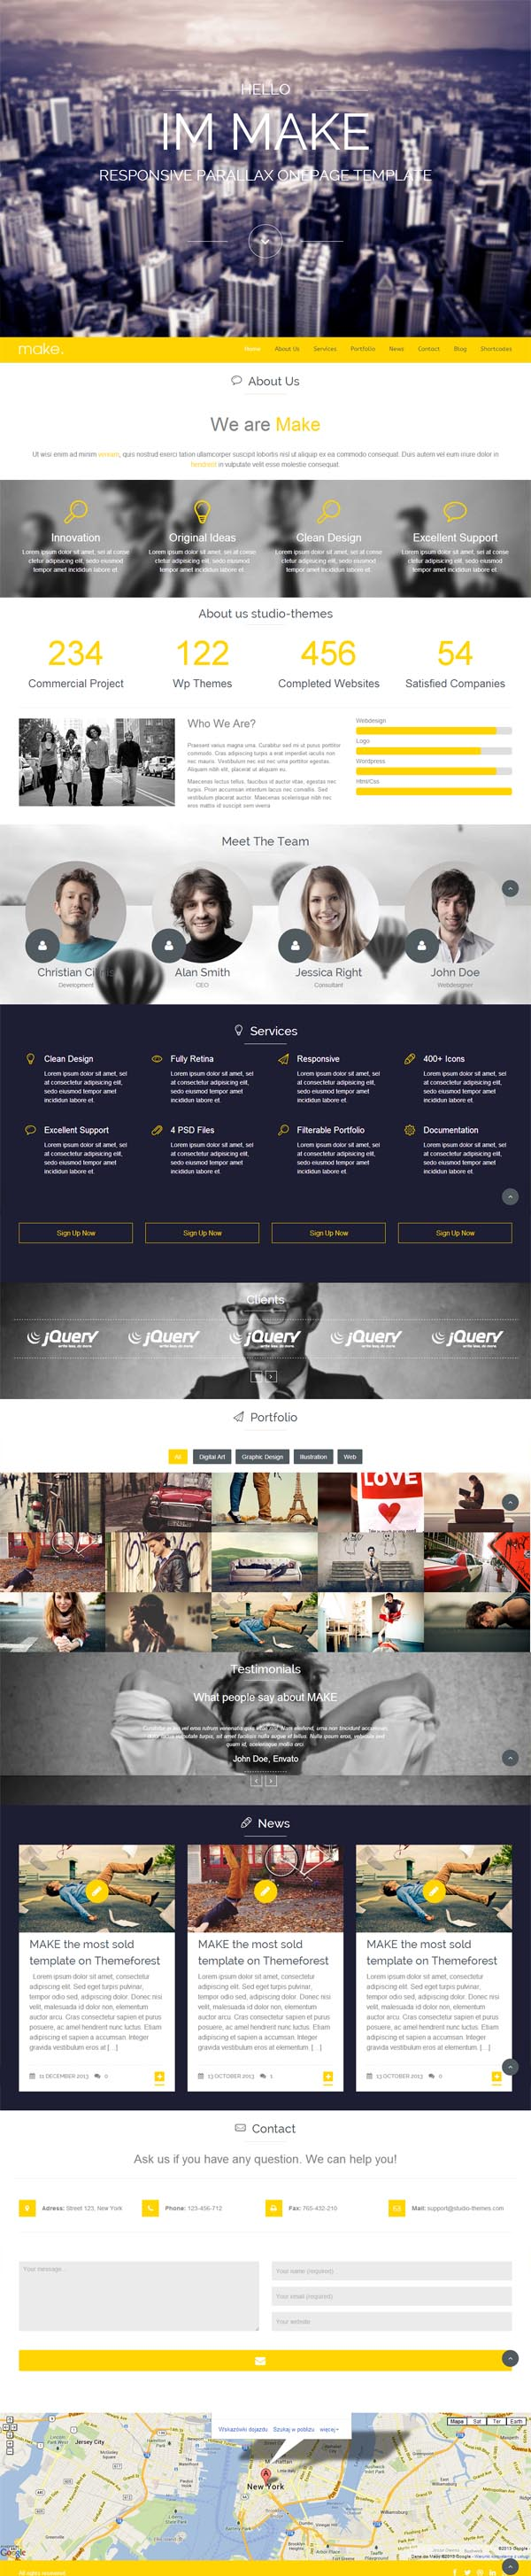 Make - Responsive Parallax One Page WordPress Theme